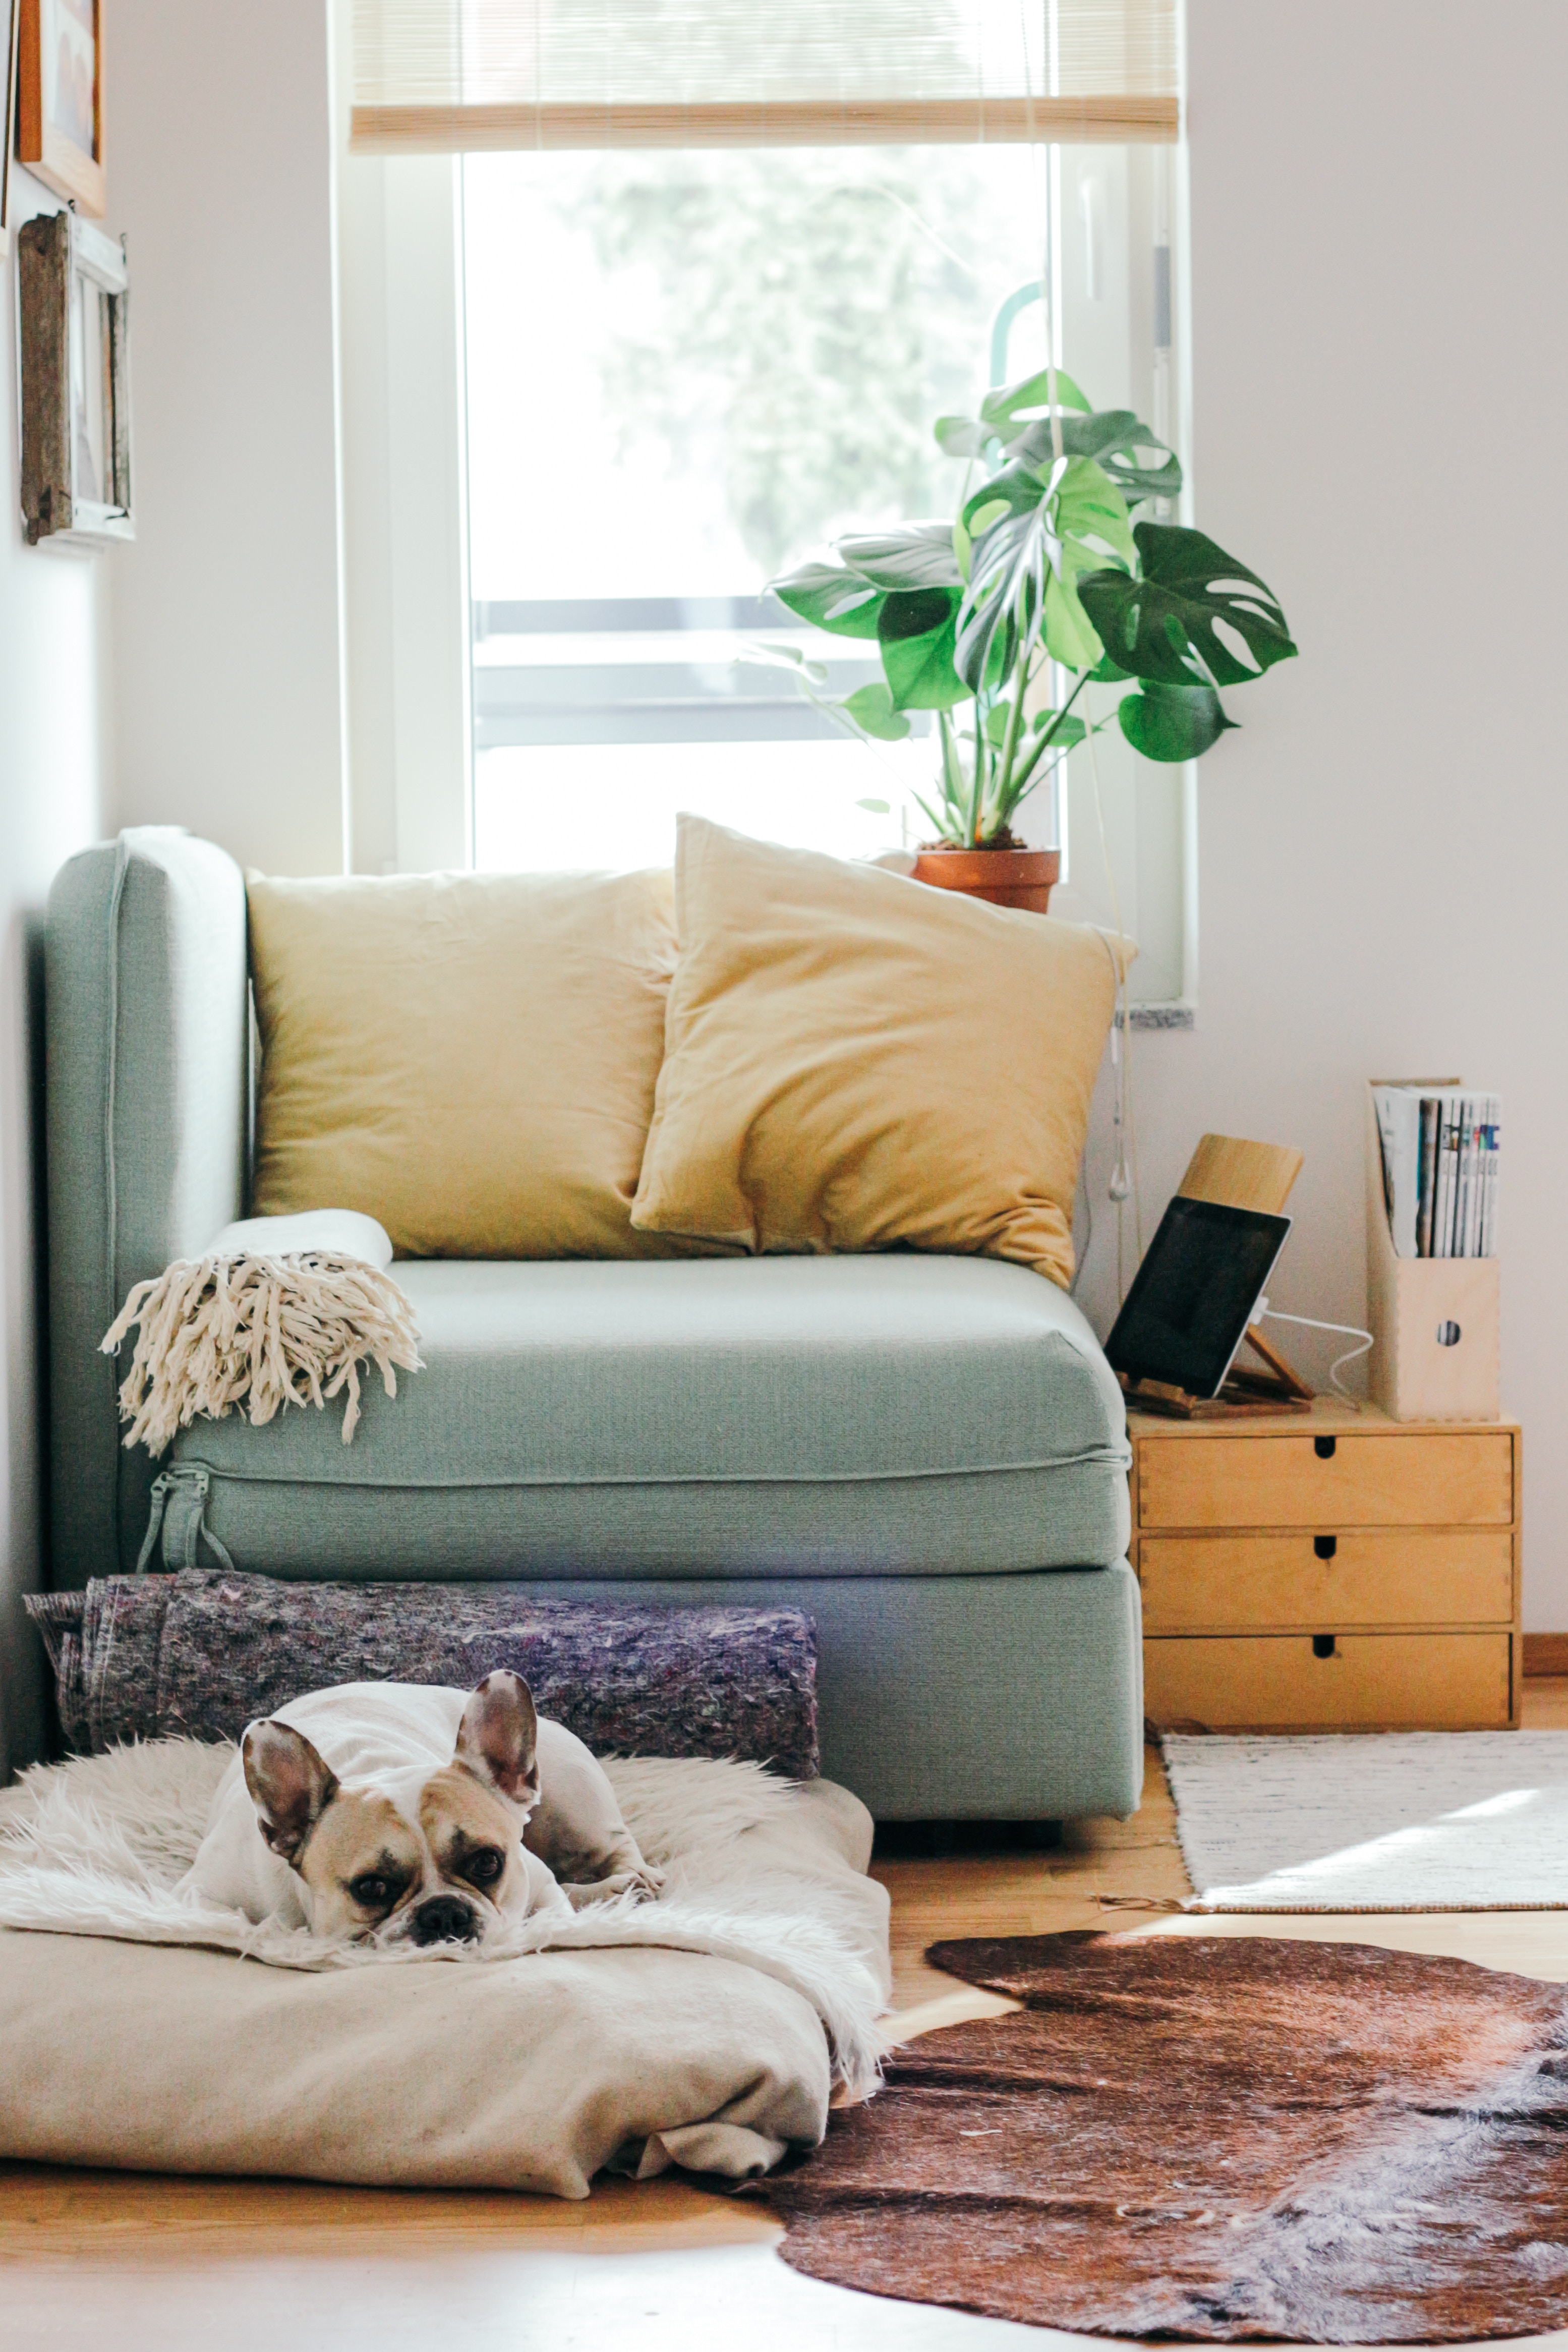 10 Easy Ways to Make Your Home Beautiful for Summer on a Budget